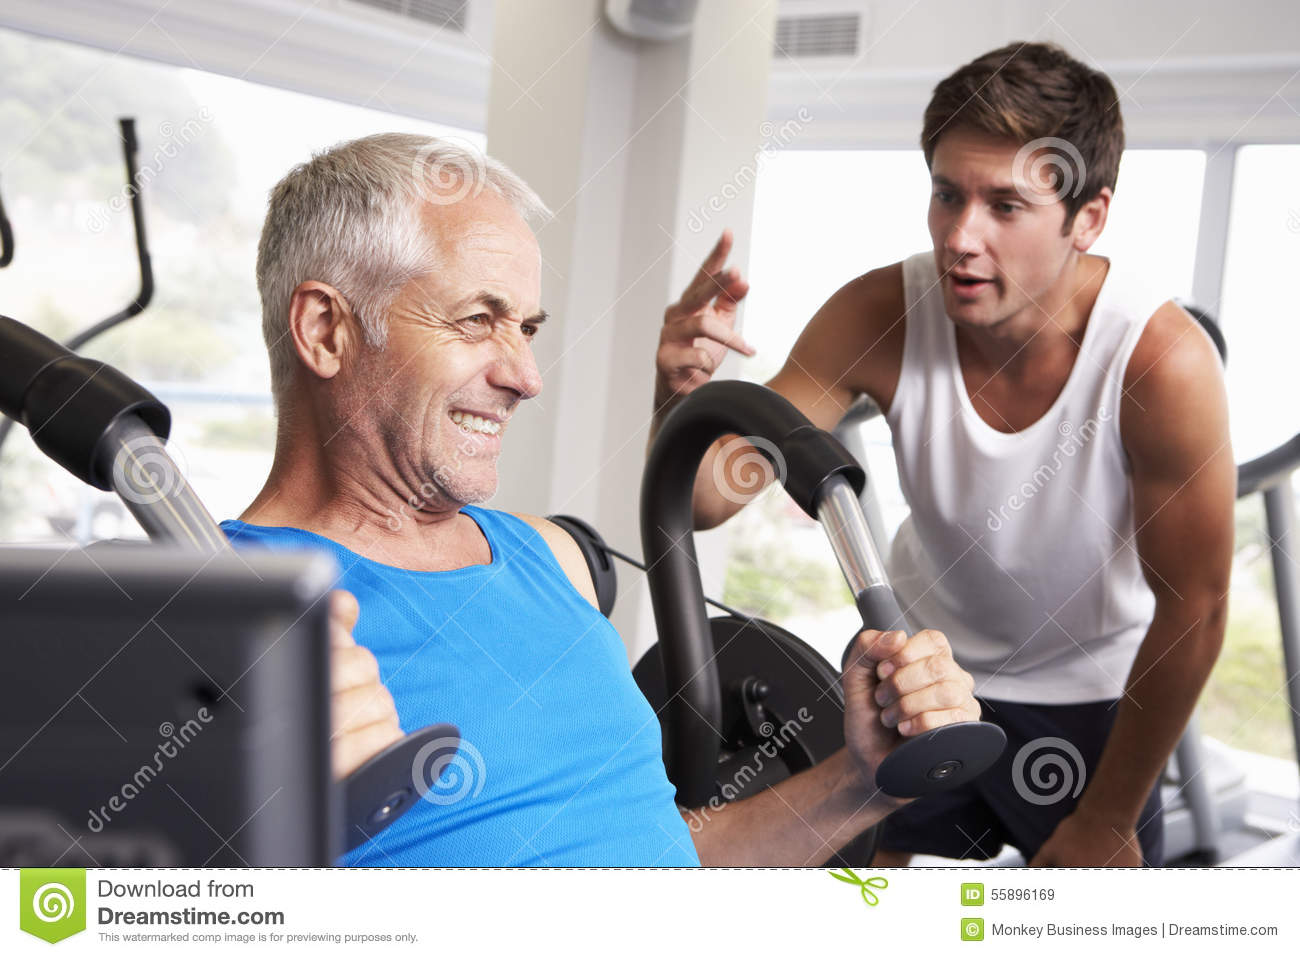 dating a male personal trainer Stories of client-trainer affairs are all too common why does starting a personalized fitness regime often also lead to the start of an affair.